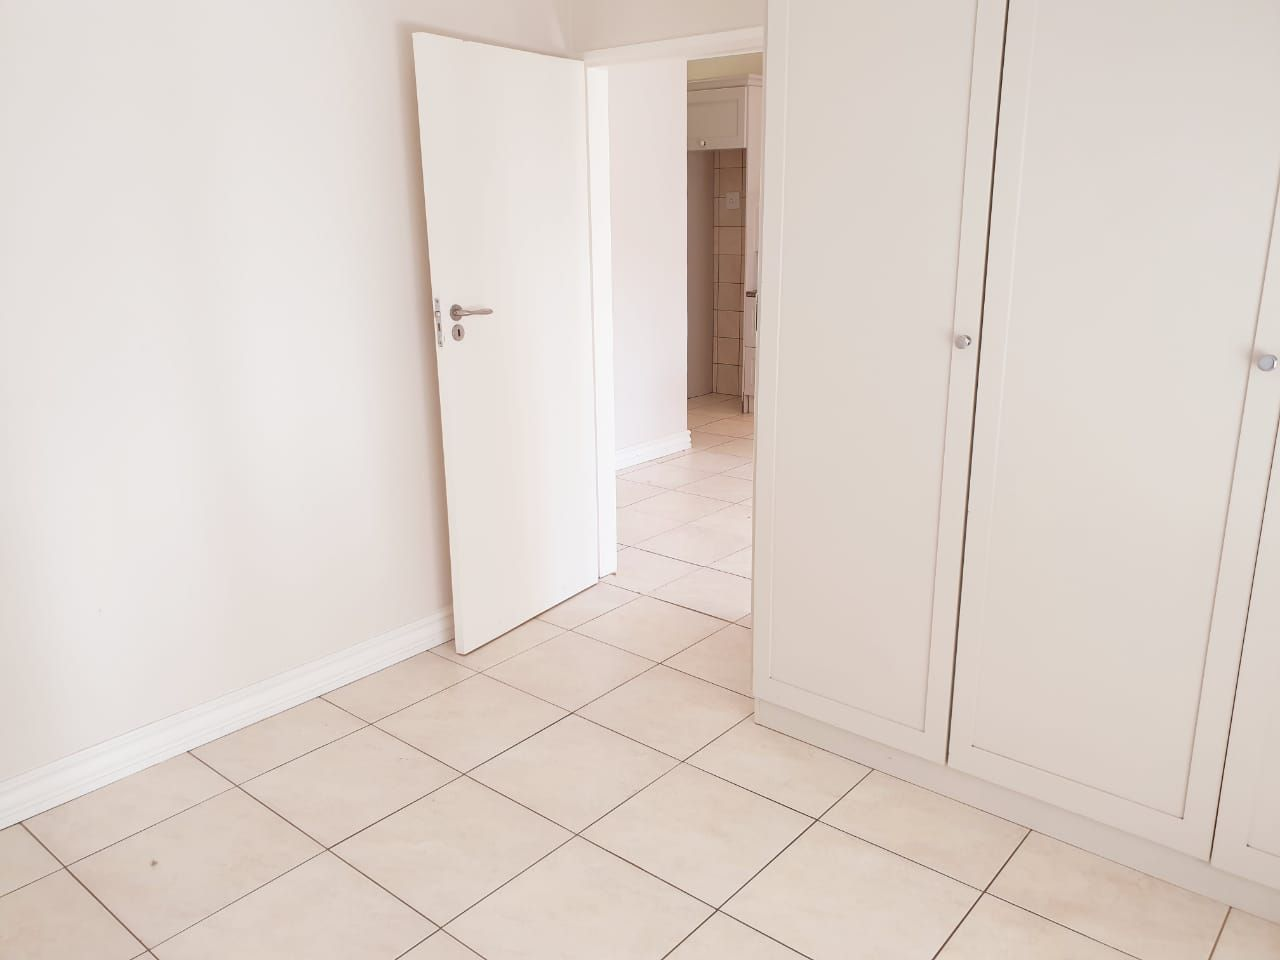 Apartment in Bult - WhatsApp Image 2019-05-03 at 11.35.18 (1).jpeg